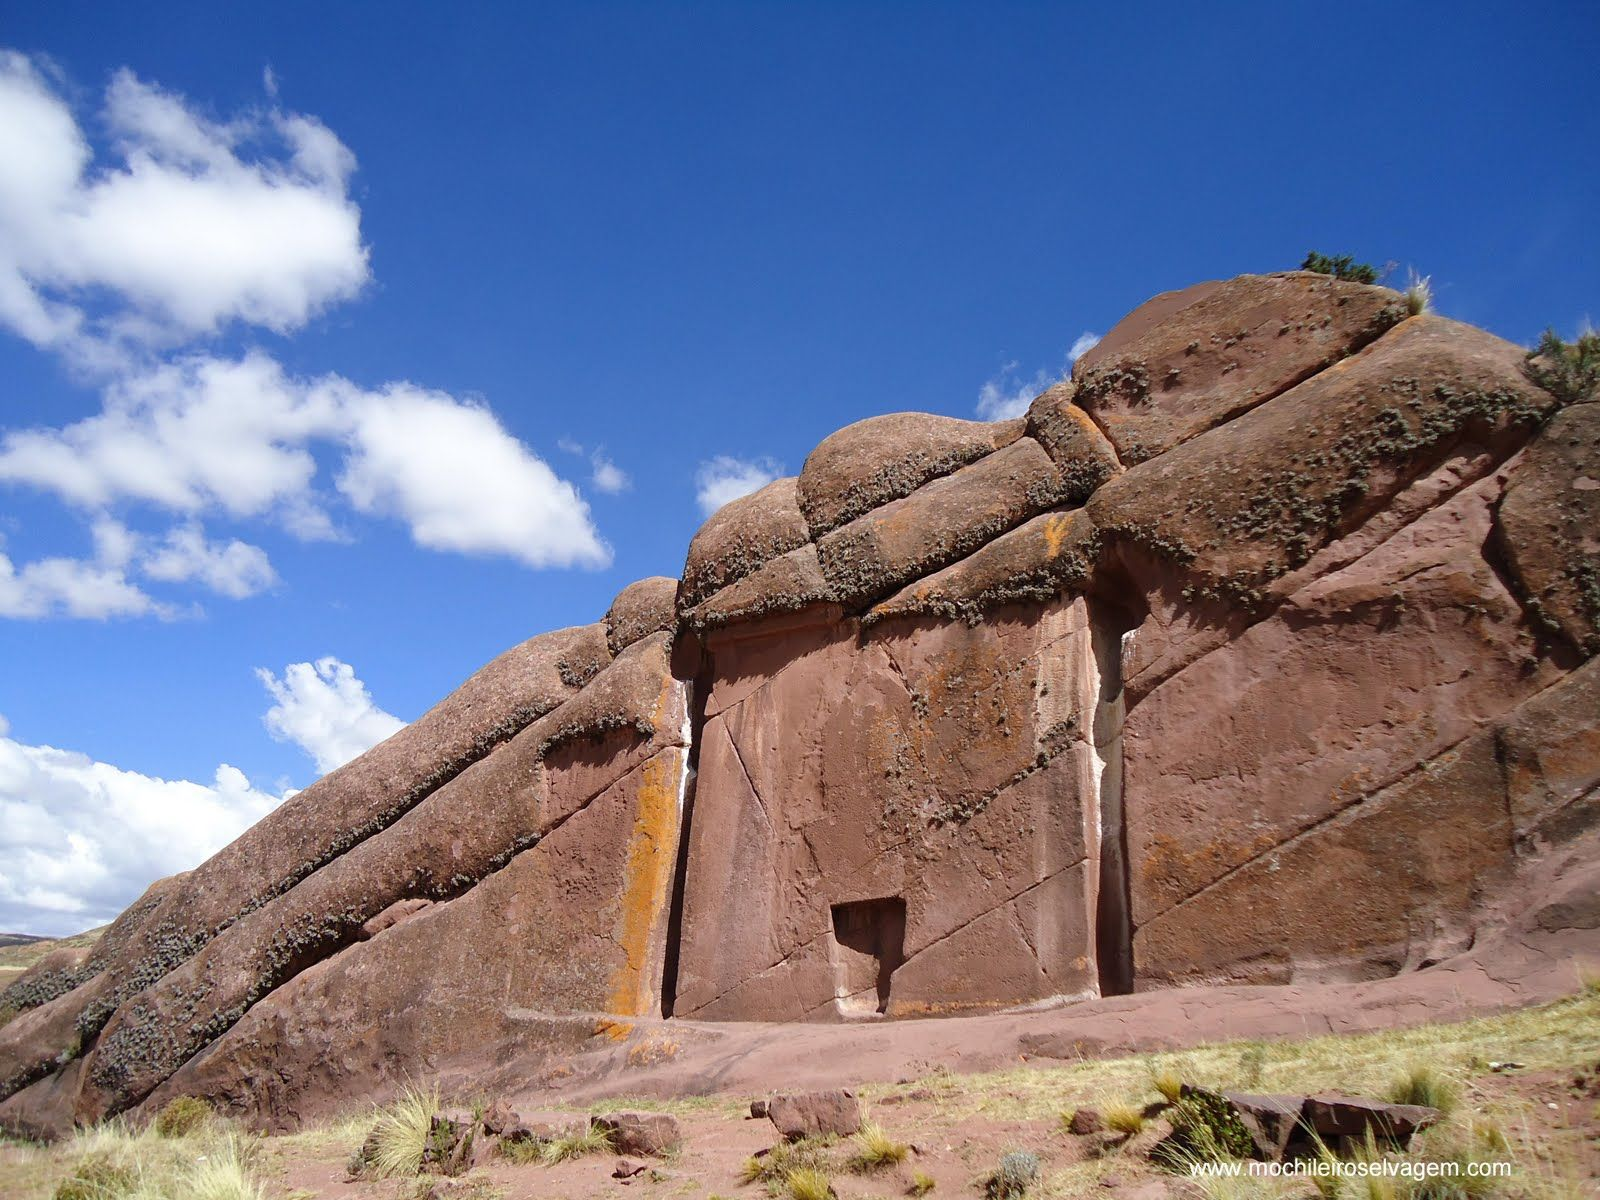 Puerta de Hayu Marca or Gate of the Gods, Lake Titicaca, Perú - carved out of the natural rock face, it measures exactly 23 feet in height and width, with a smaller alcove in the center at the base which measures in at just under 6 feet in height.